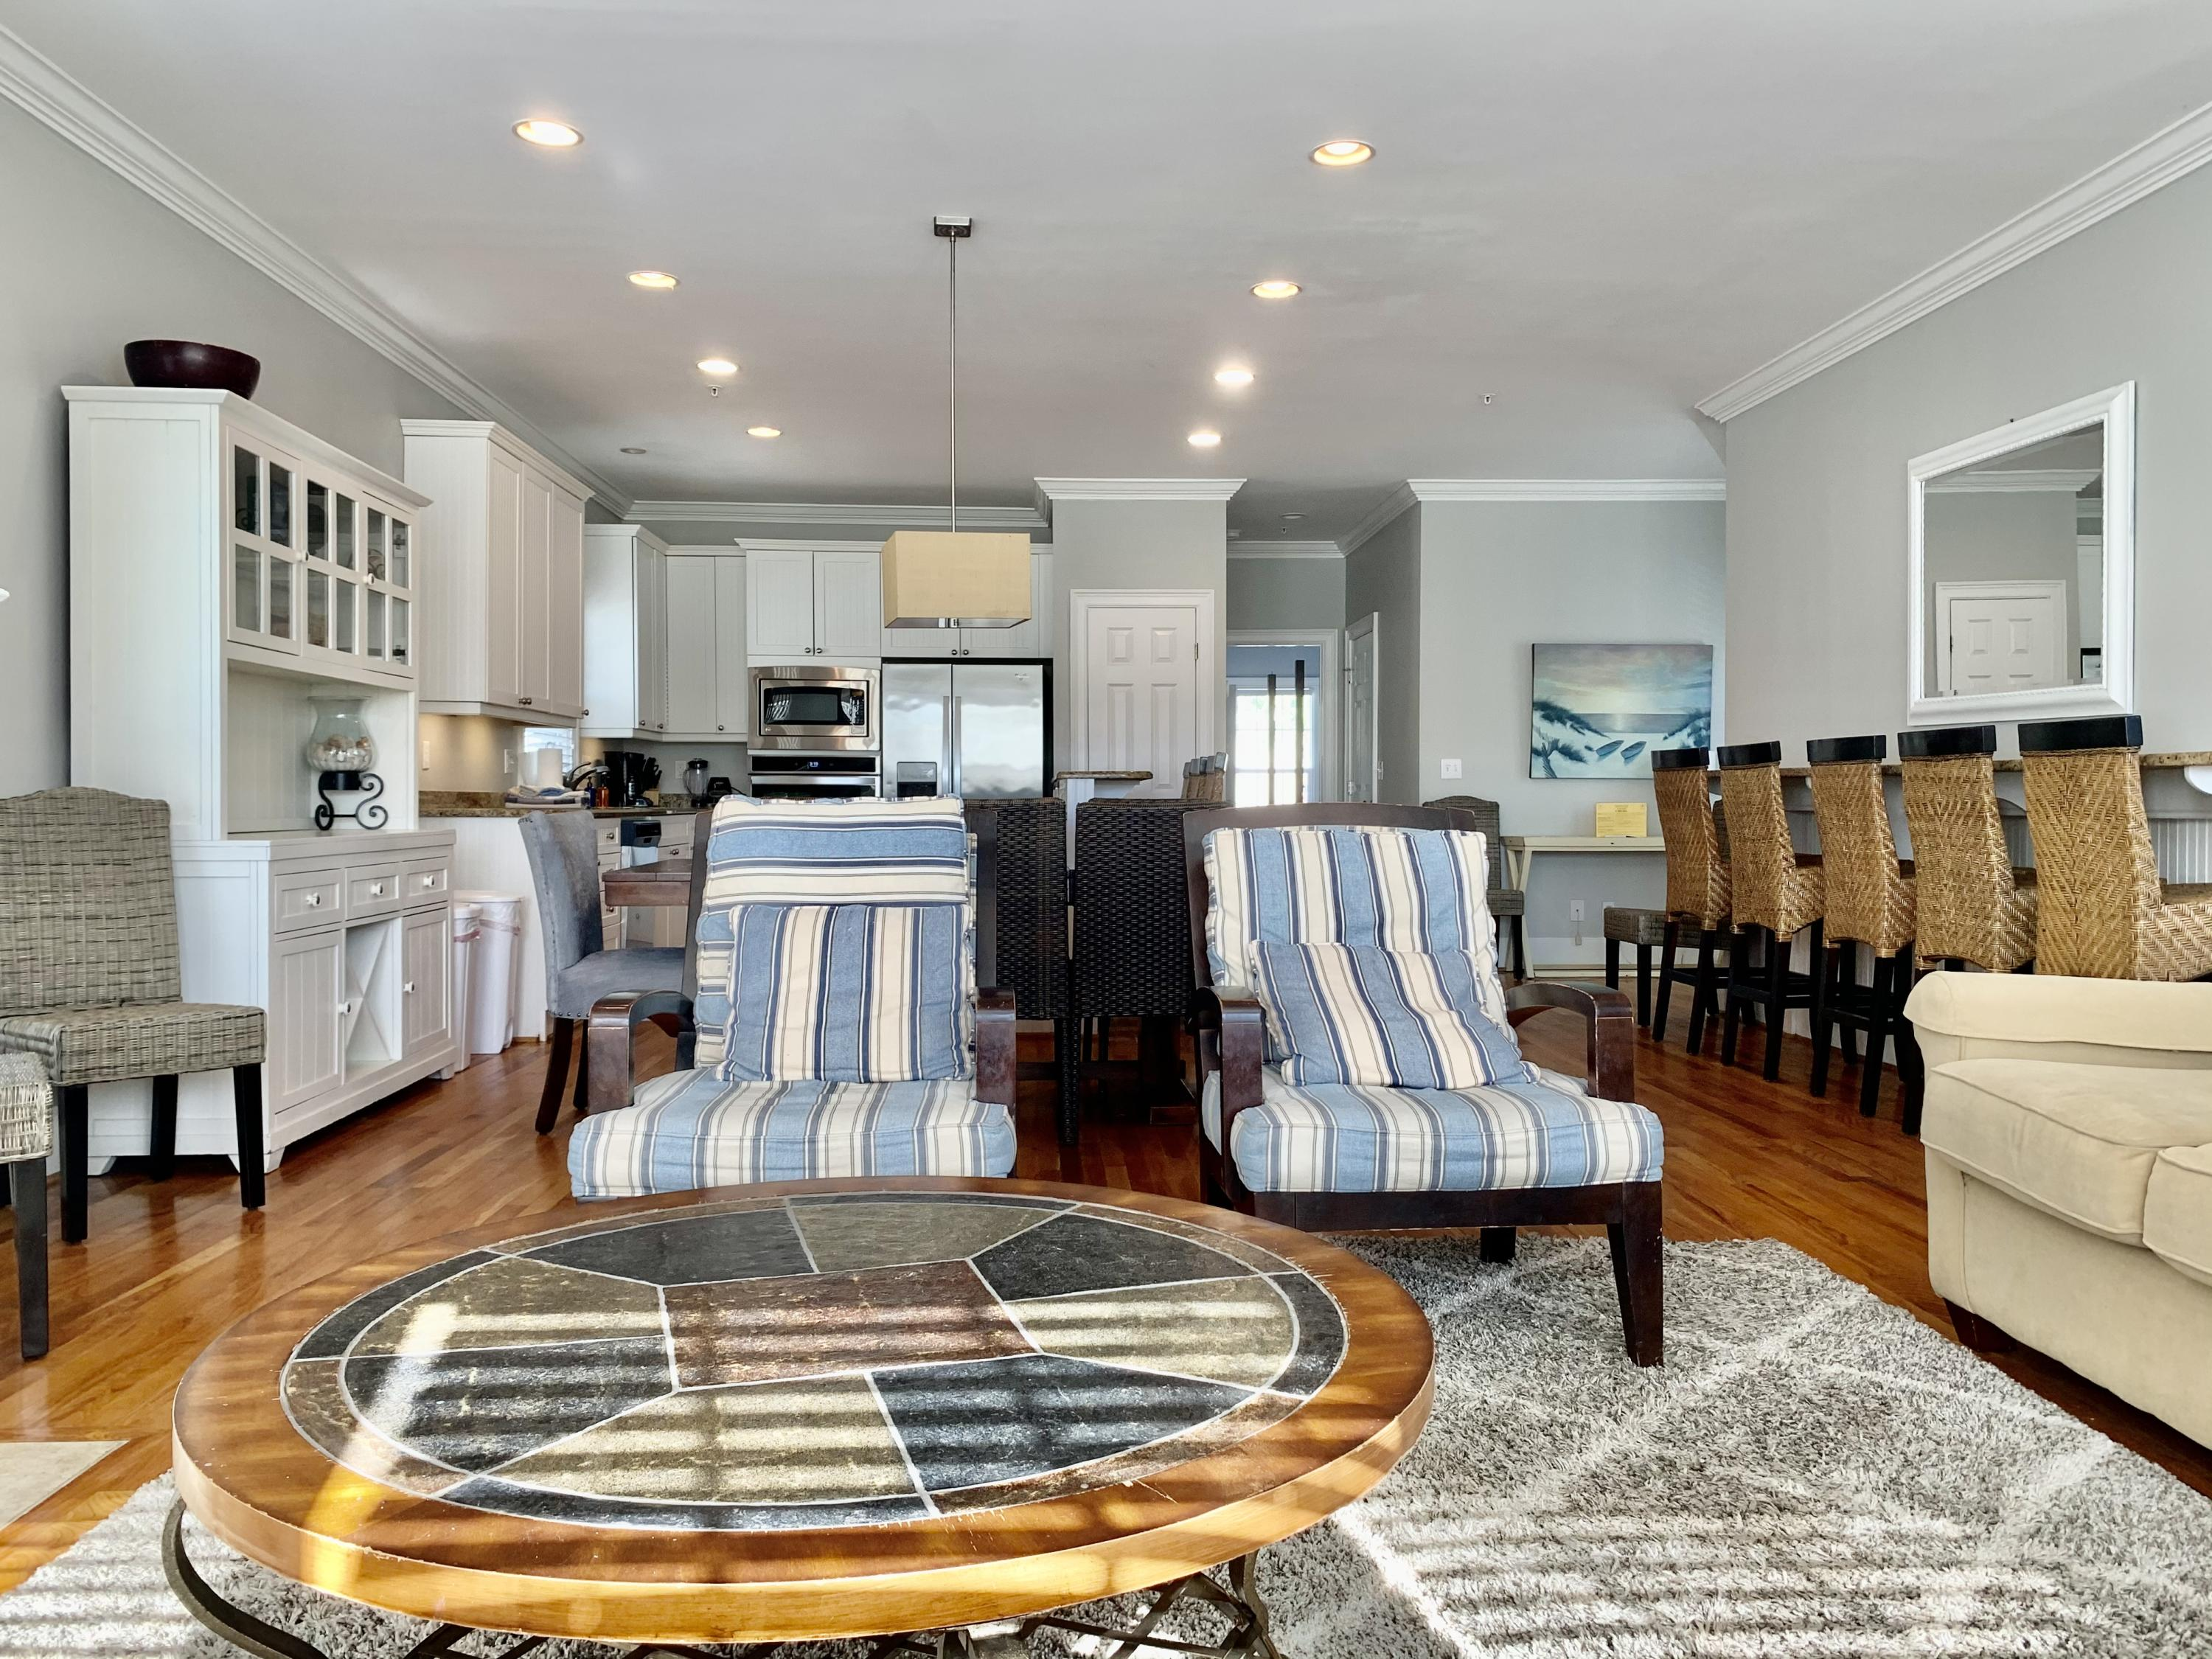 6 10th Avenue, Isle of Palms, 29451, 7 Bedrooms Bedrooms, ,5 BathroomsBathrooms,Residential,For Sale,10th,21004180